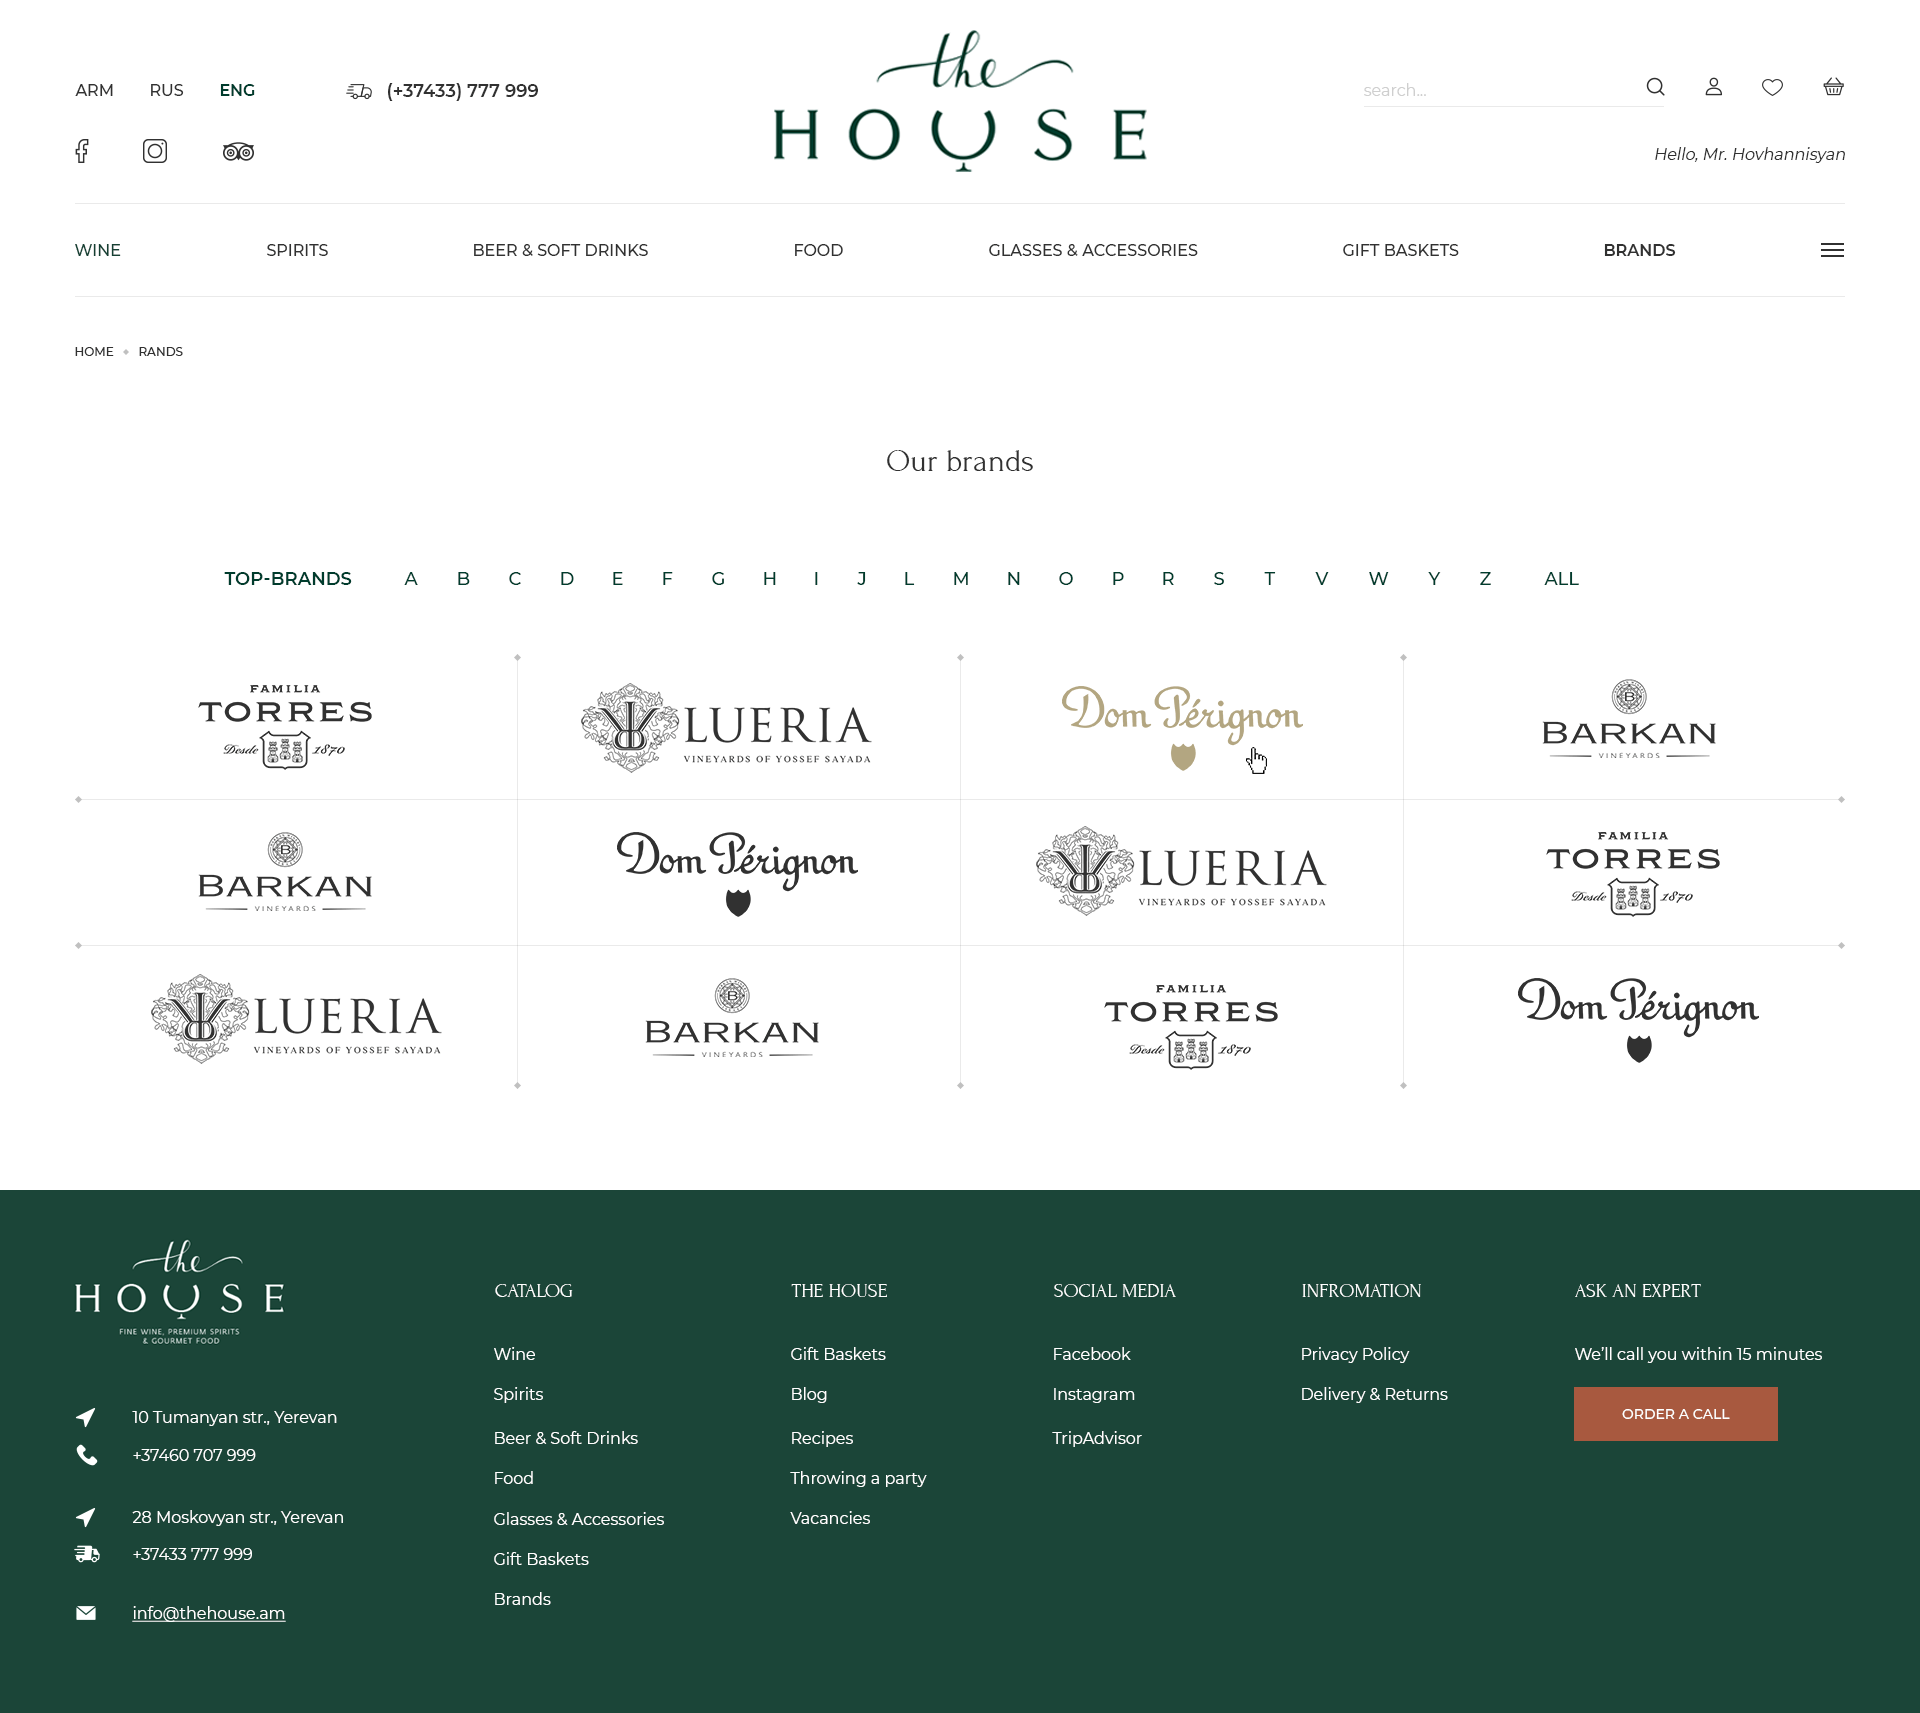 Brands The House